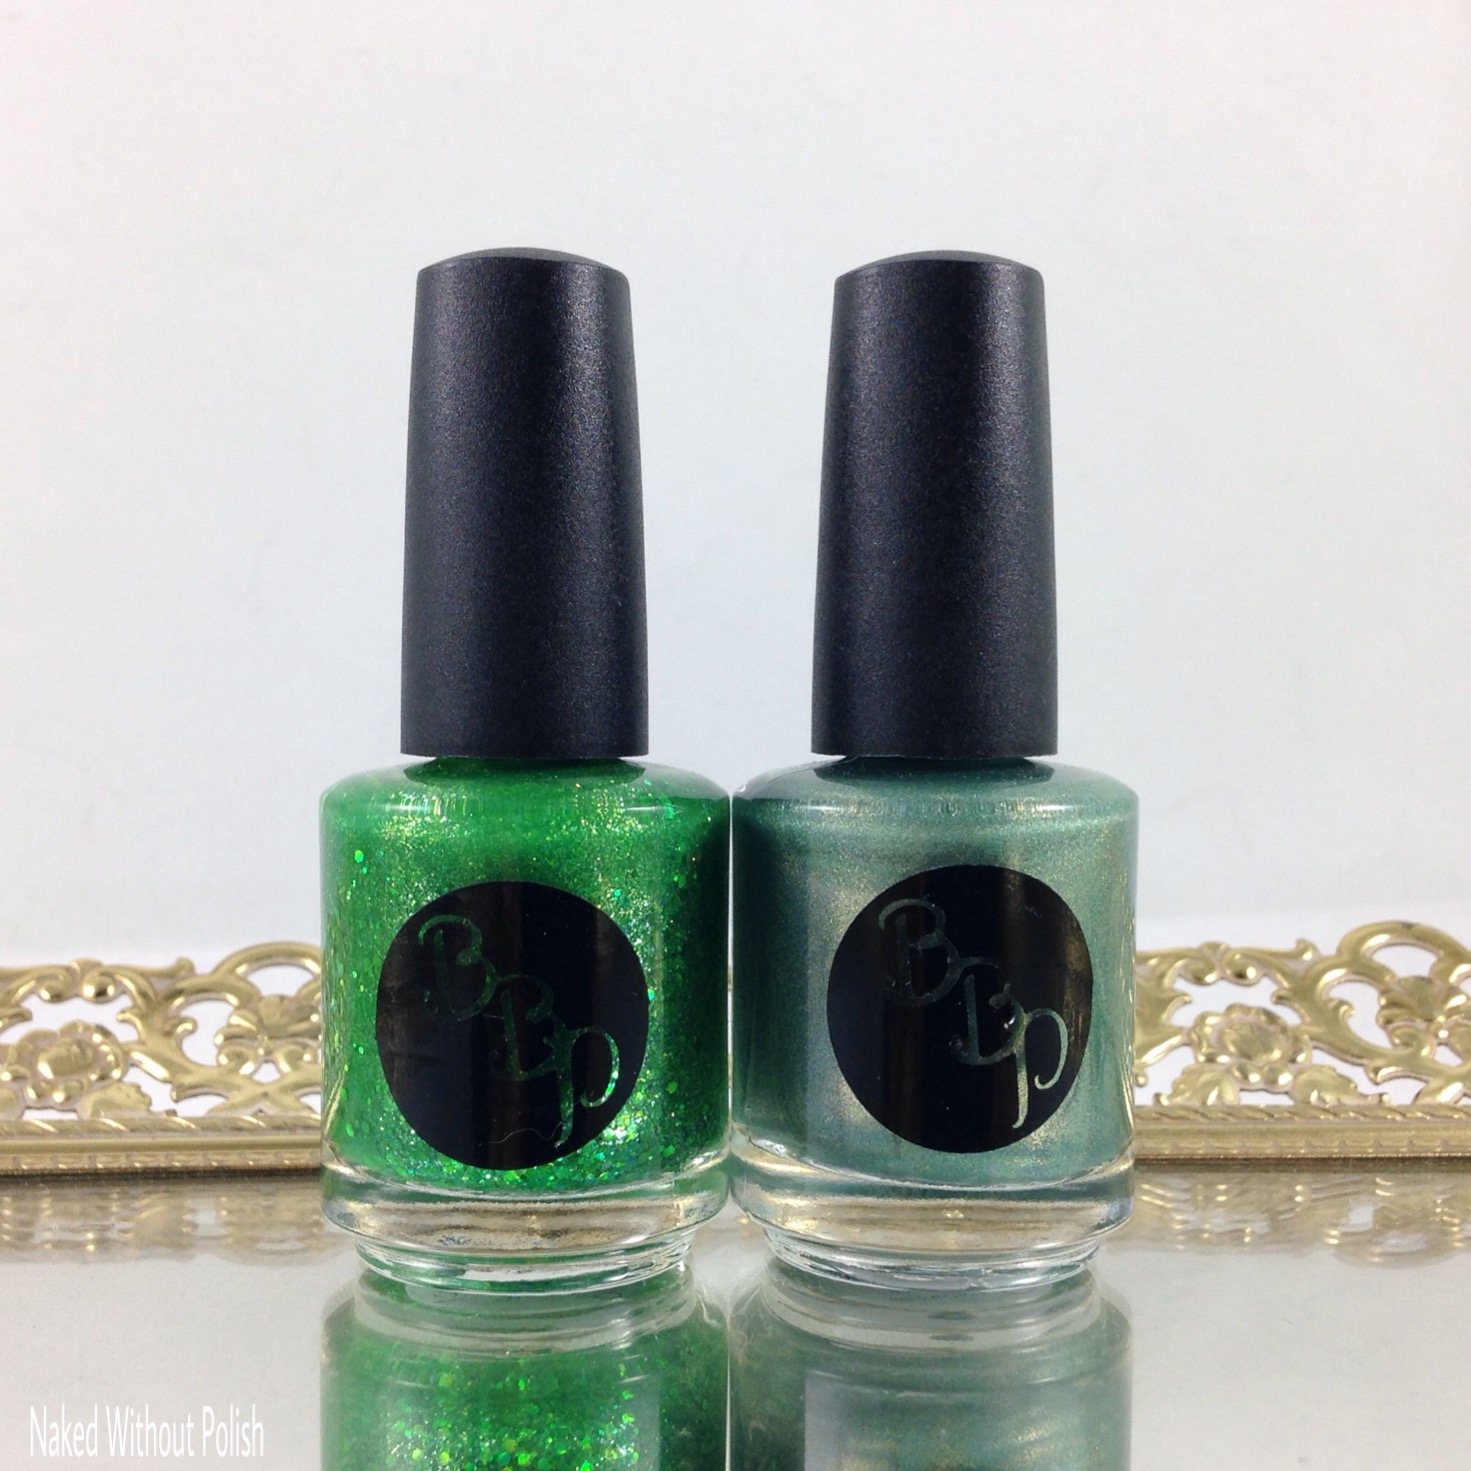 Bad-Bitch-Polish-August-Birthstone-Duo-1